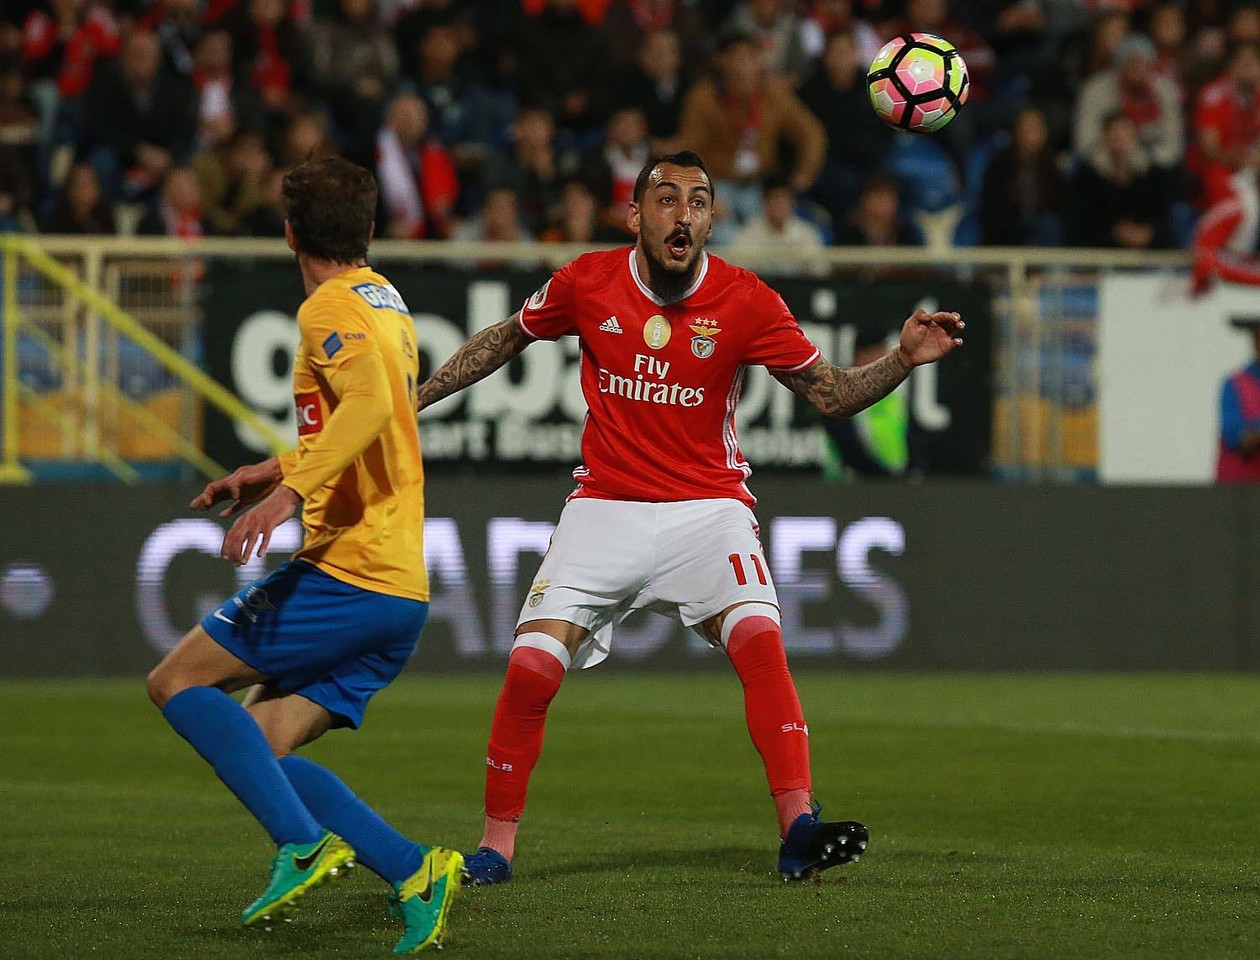 mitroglou estoril.jpg